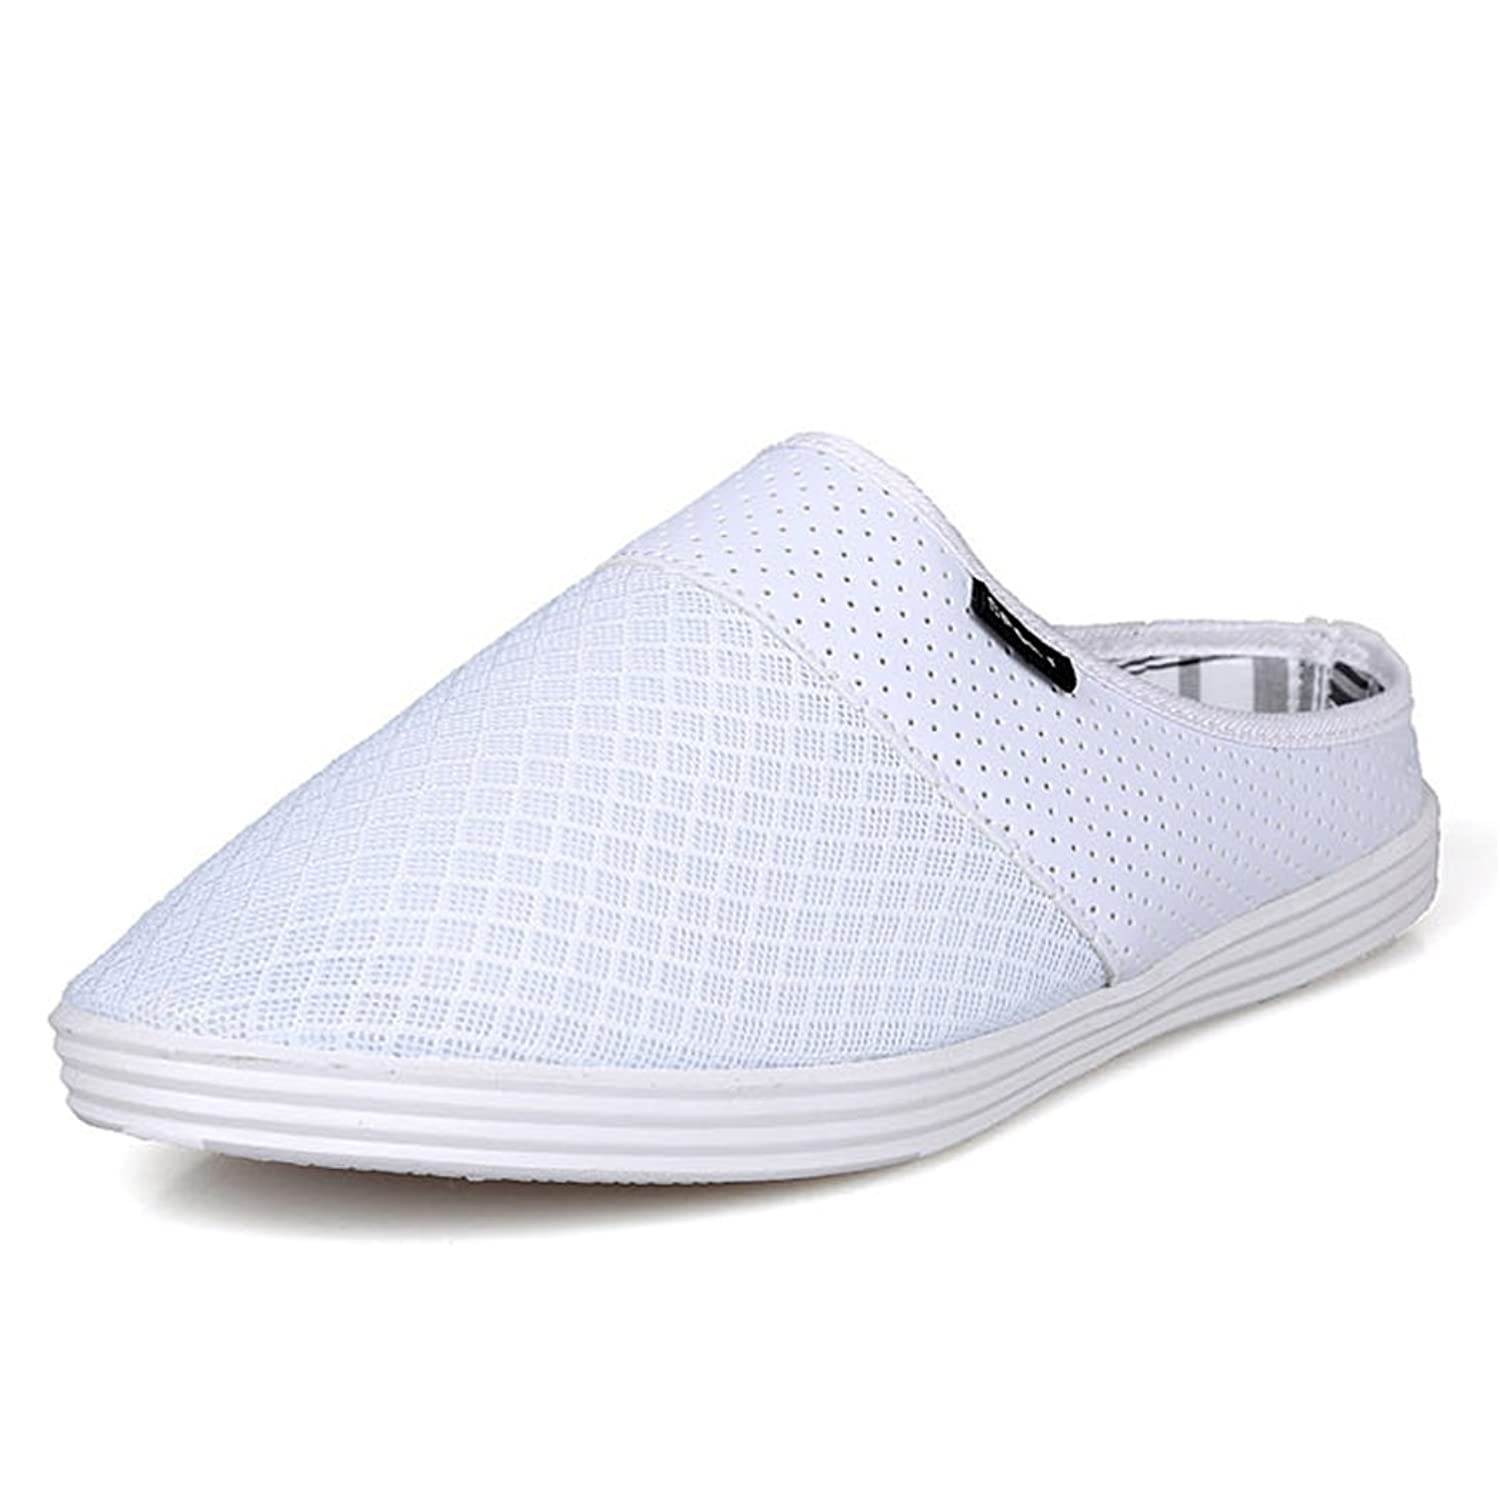 ASlibay Casual Semi-slippers Mesh Breathable Round Toe Slip-on Men Sandals